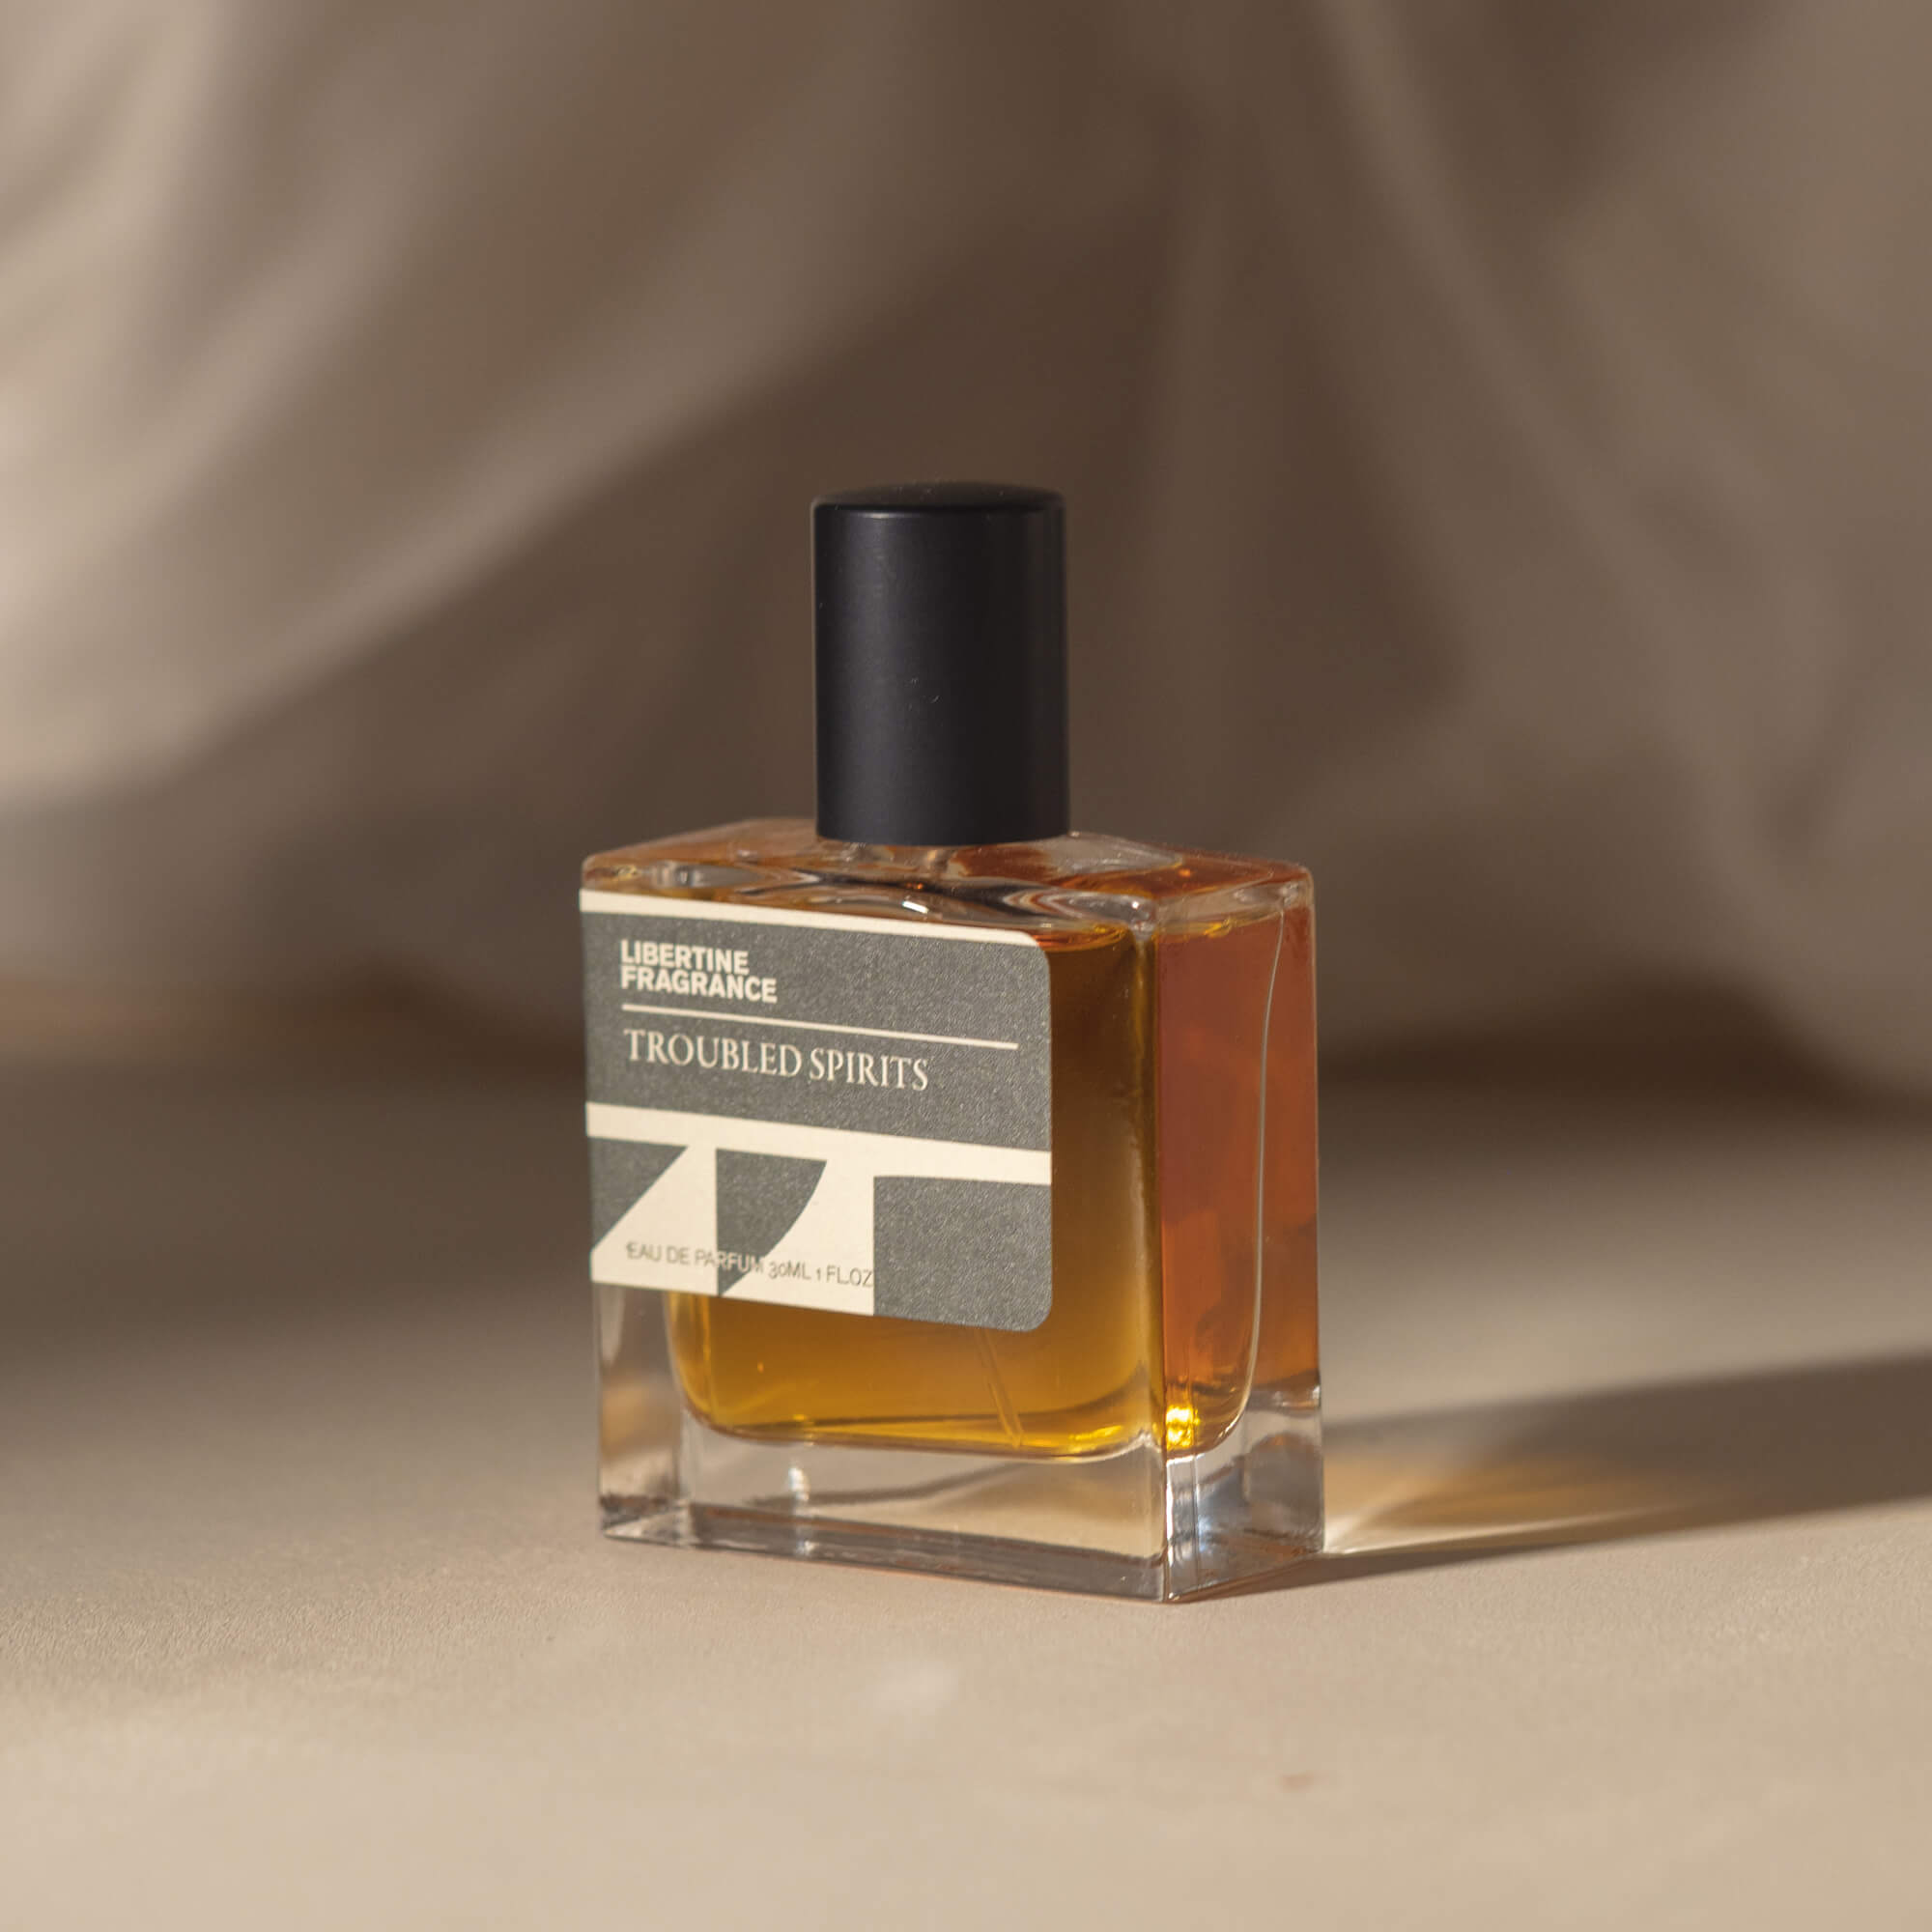 Perfume Bottle with dark perfume